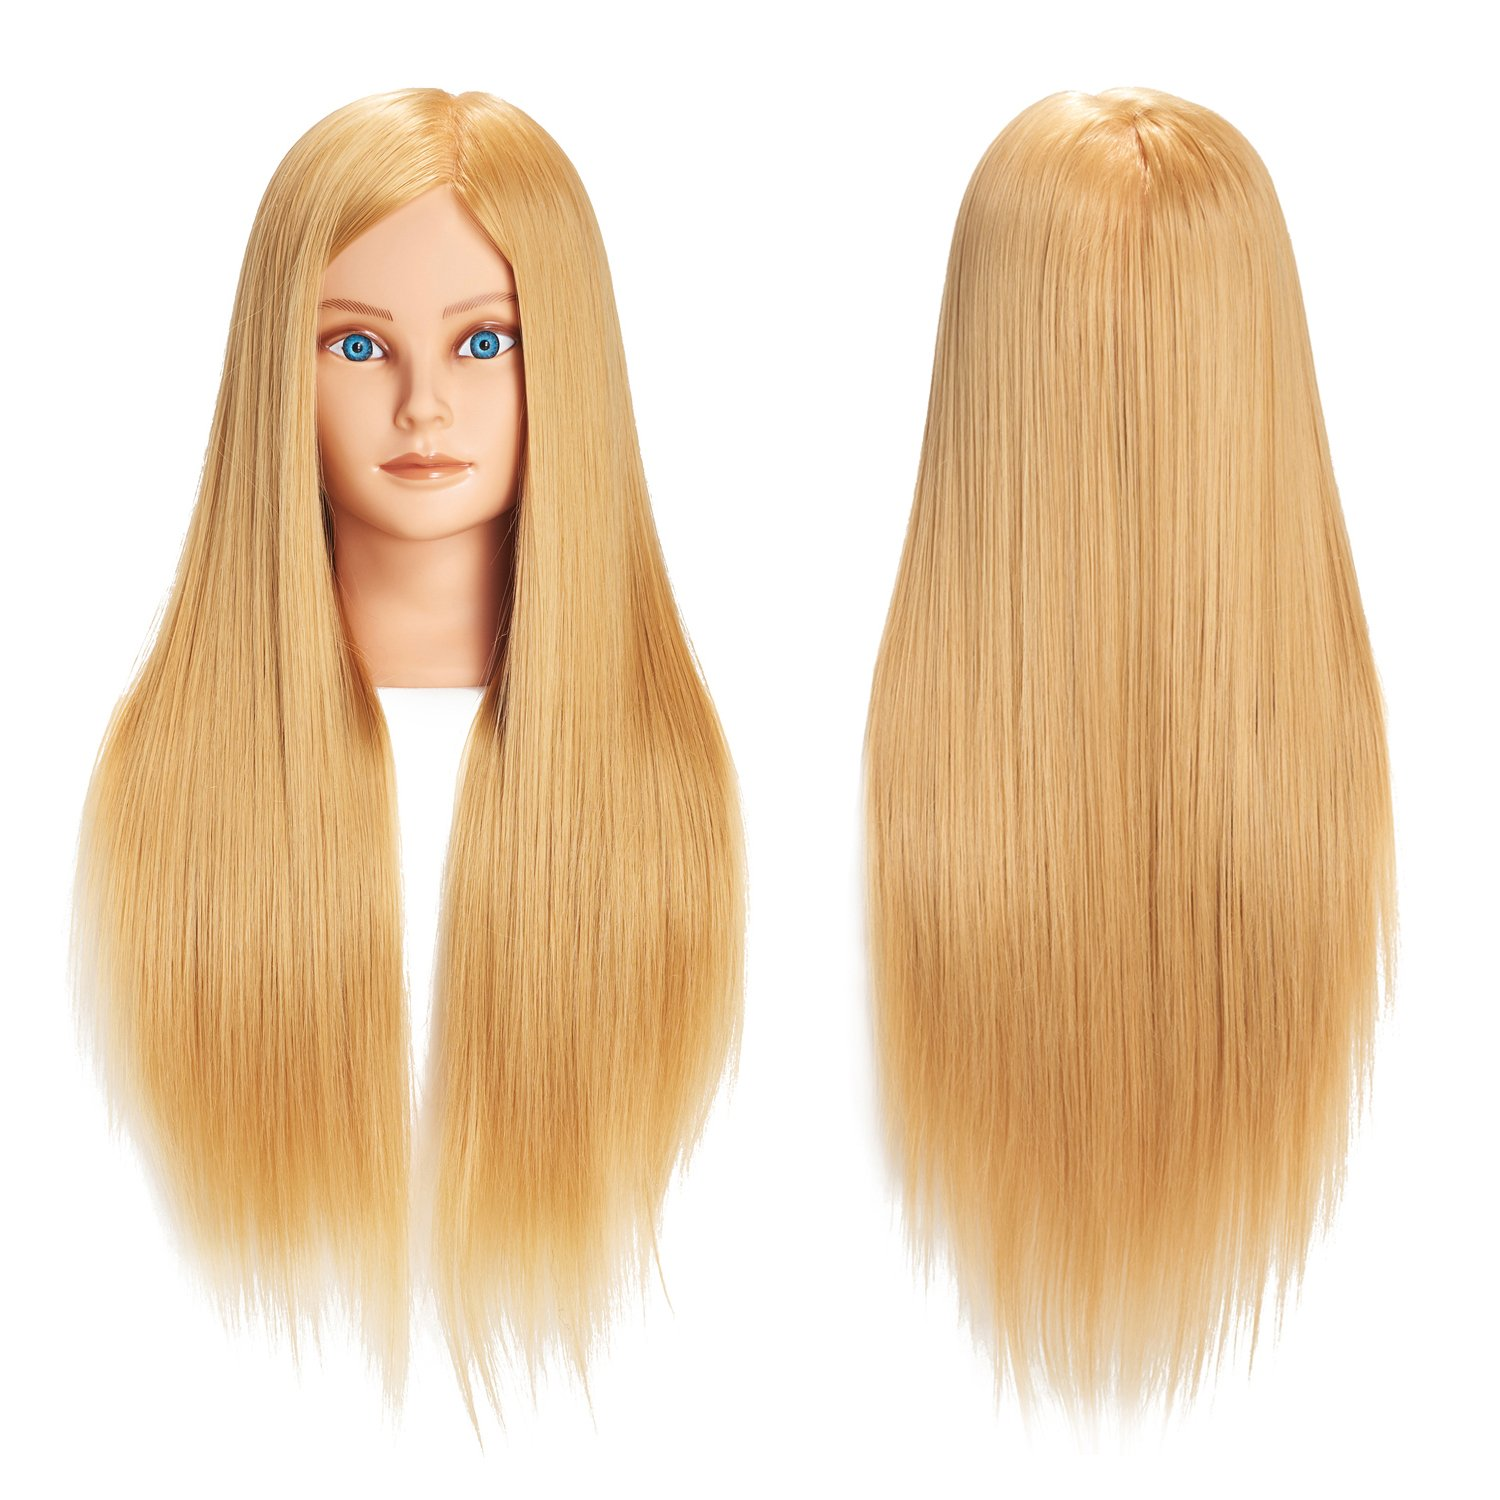 Training Head 26''-28'' Mannequin Head Hair Styling Manikin Cosmetology Doll Head Synthetic Fiber Hair Hairdressing Training Model Free Clamp (1711W2720) by training head